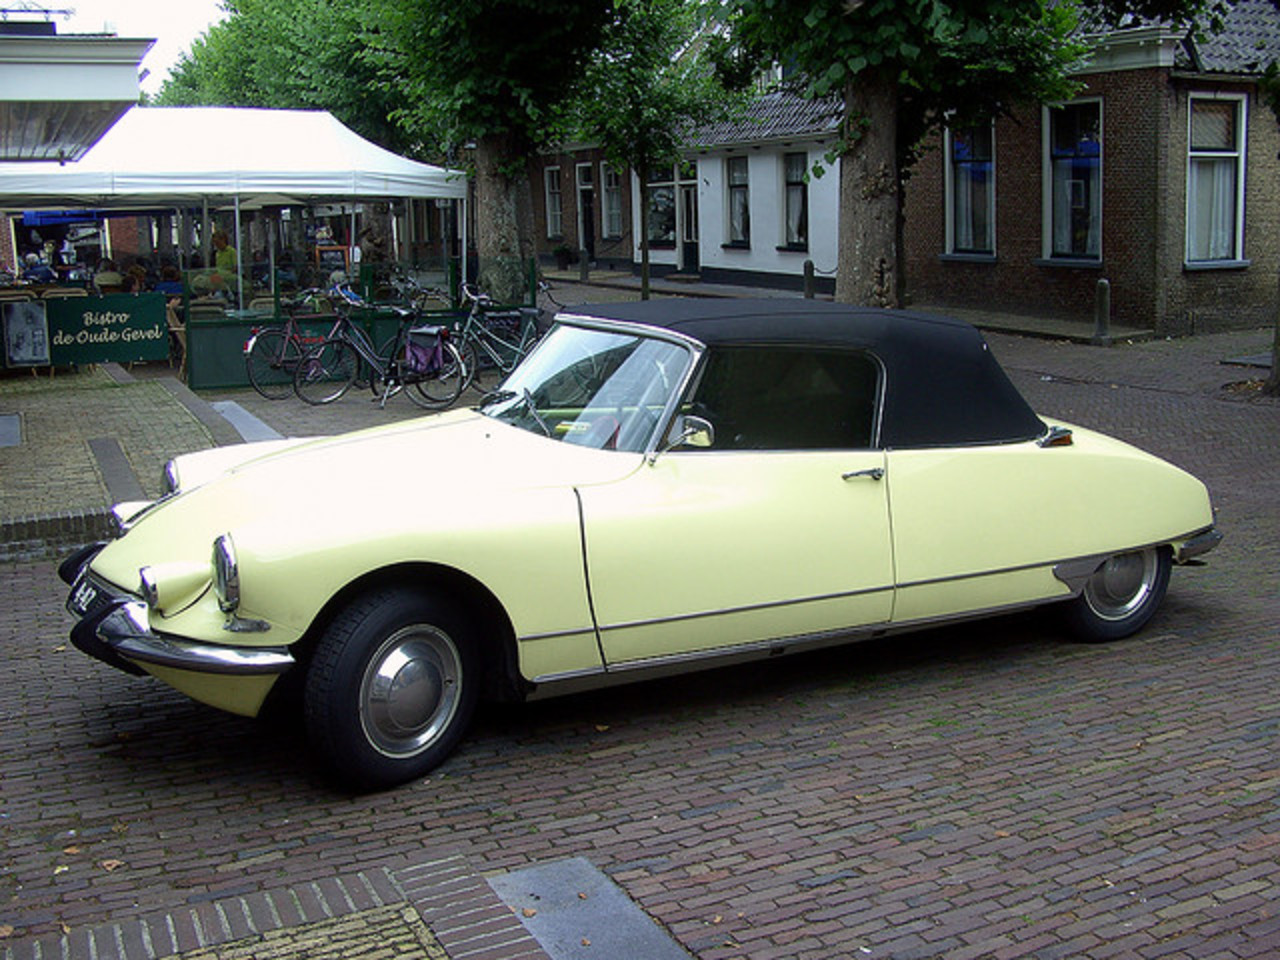 1963 Citroën DS 19 Cabriolet | Flickr - Photo Sharing!